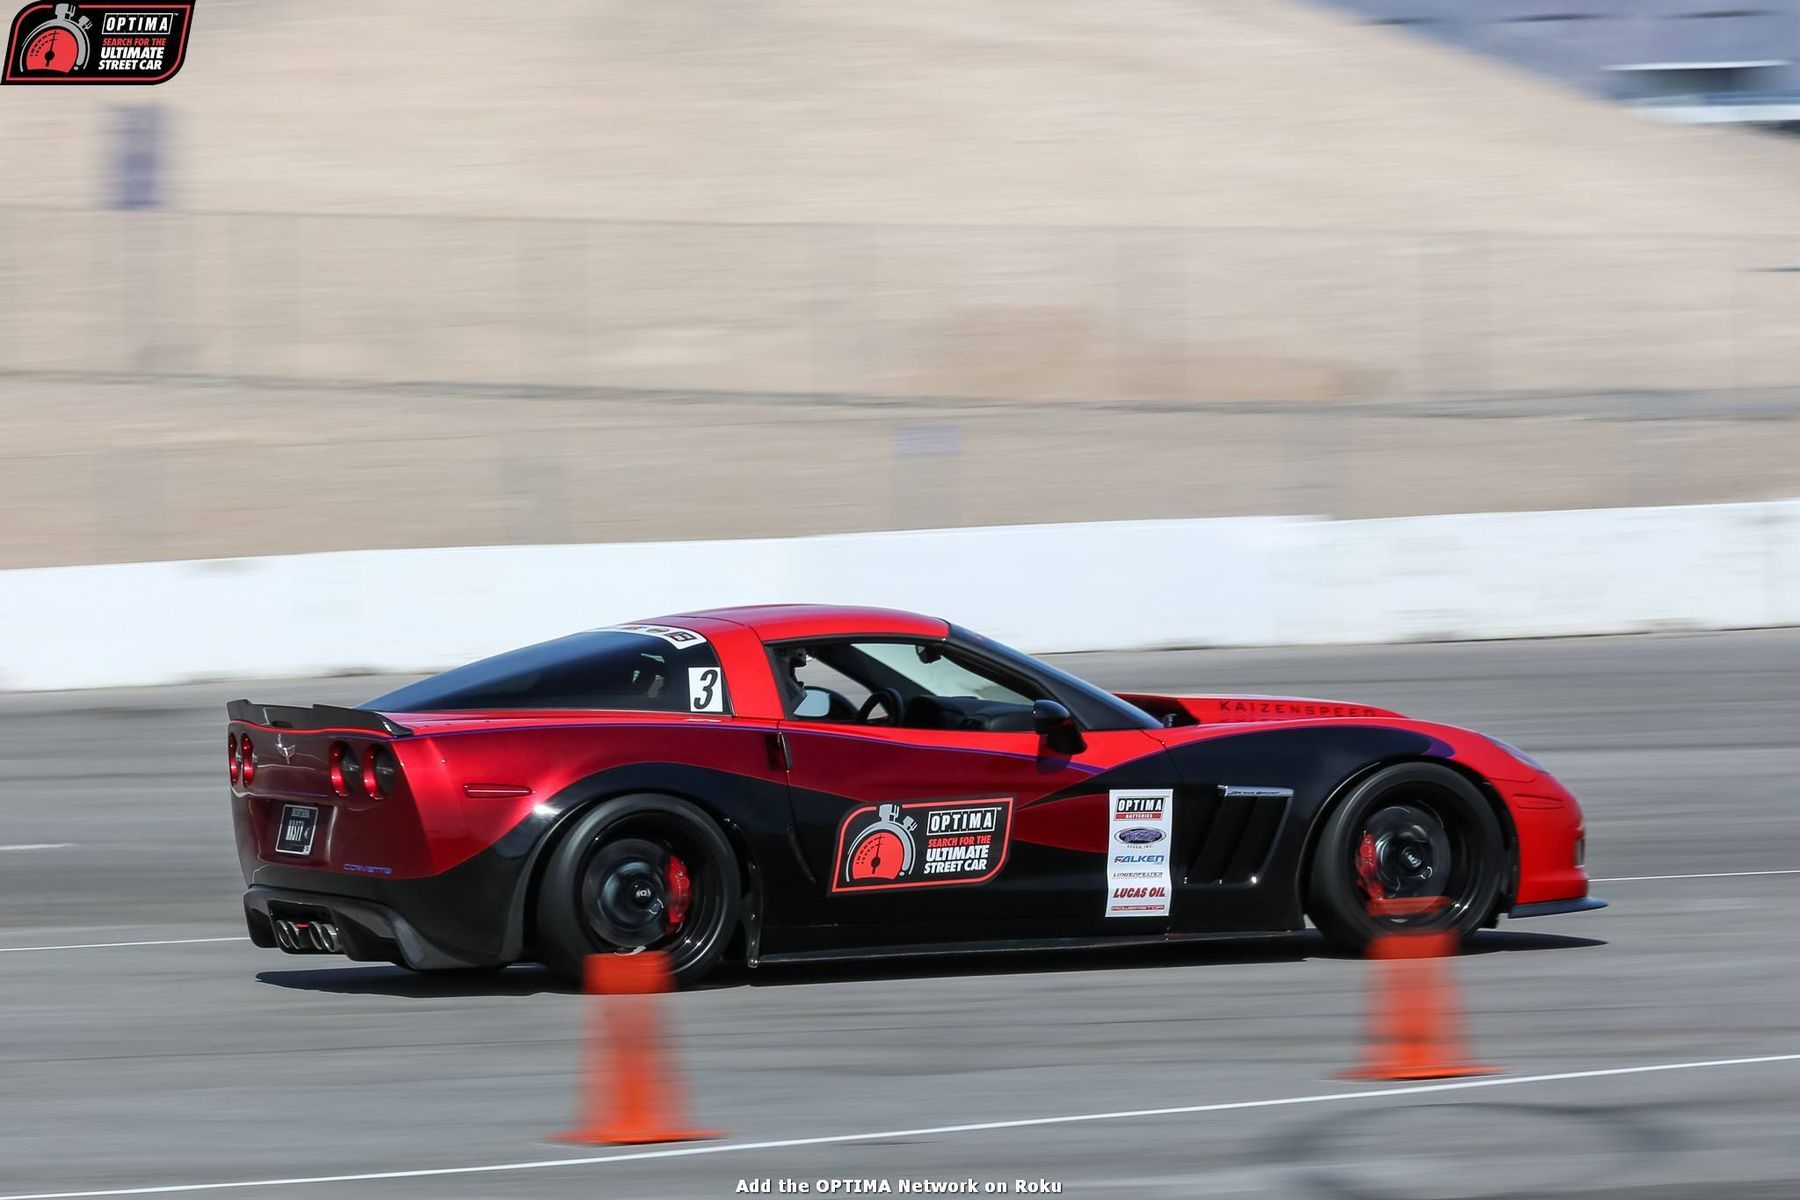 2012 Chevrolet Corvette | Glen Barnhouse Wins GTS Class at USCA Vegas with C6 Corvette Grand Sport on Forgeline DS3 Wheels